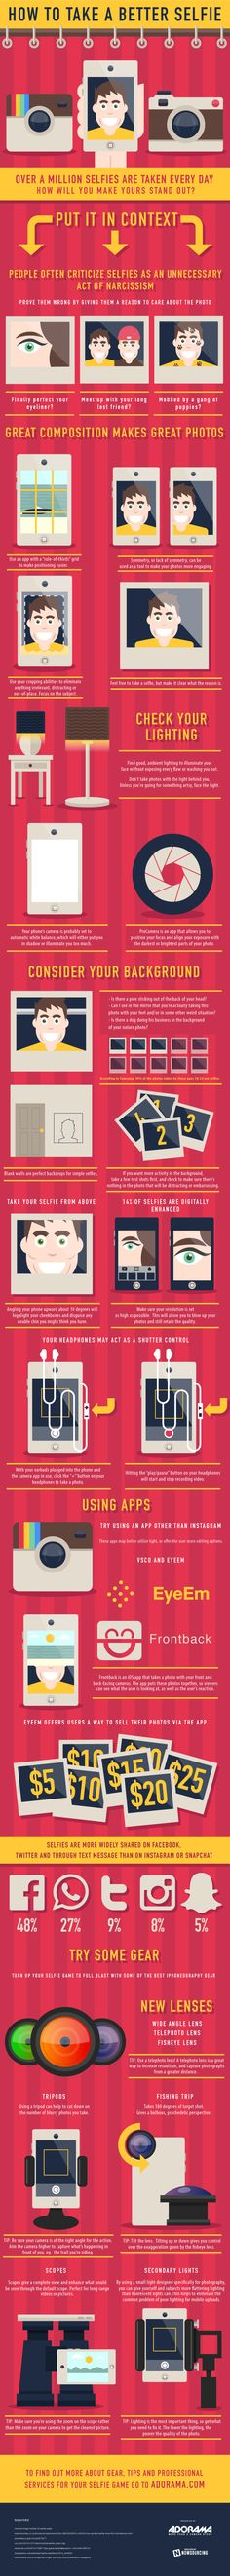 Infographic of how to take a better selfie. Your teen doesn't need these instructions... lol!